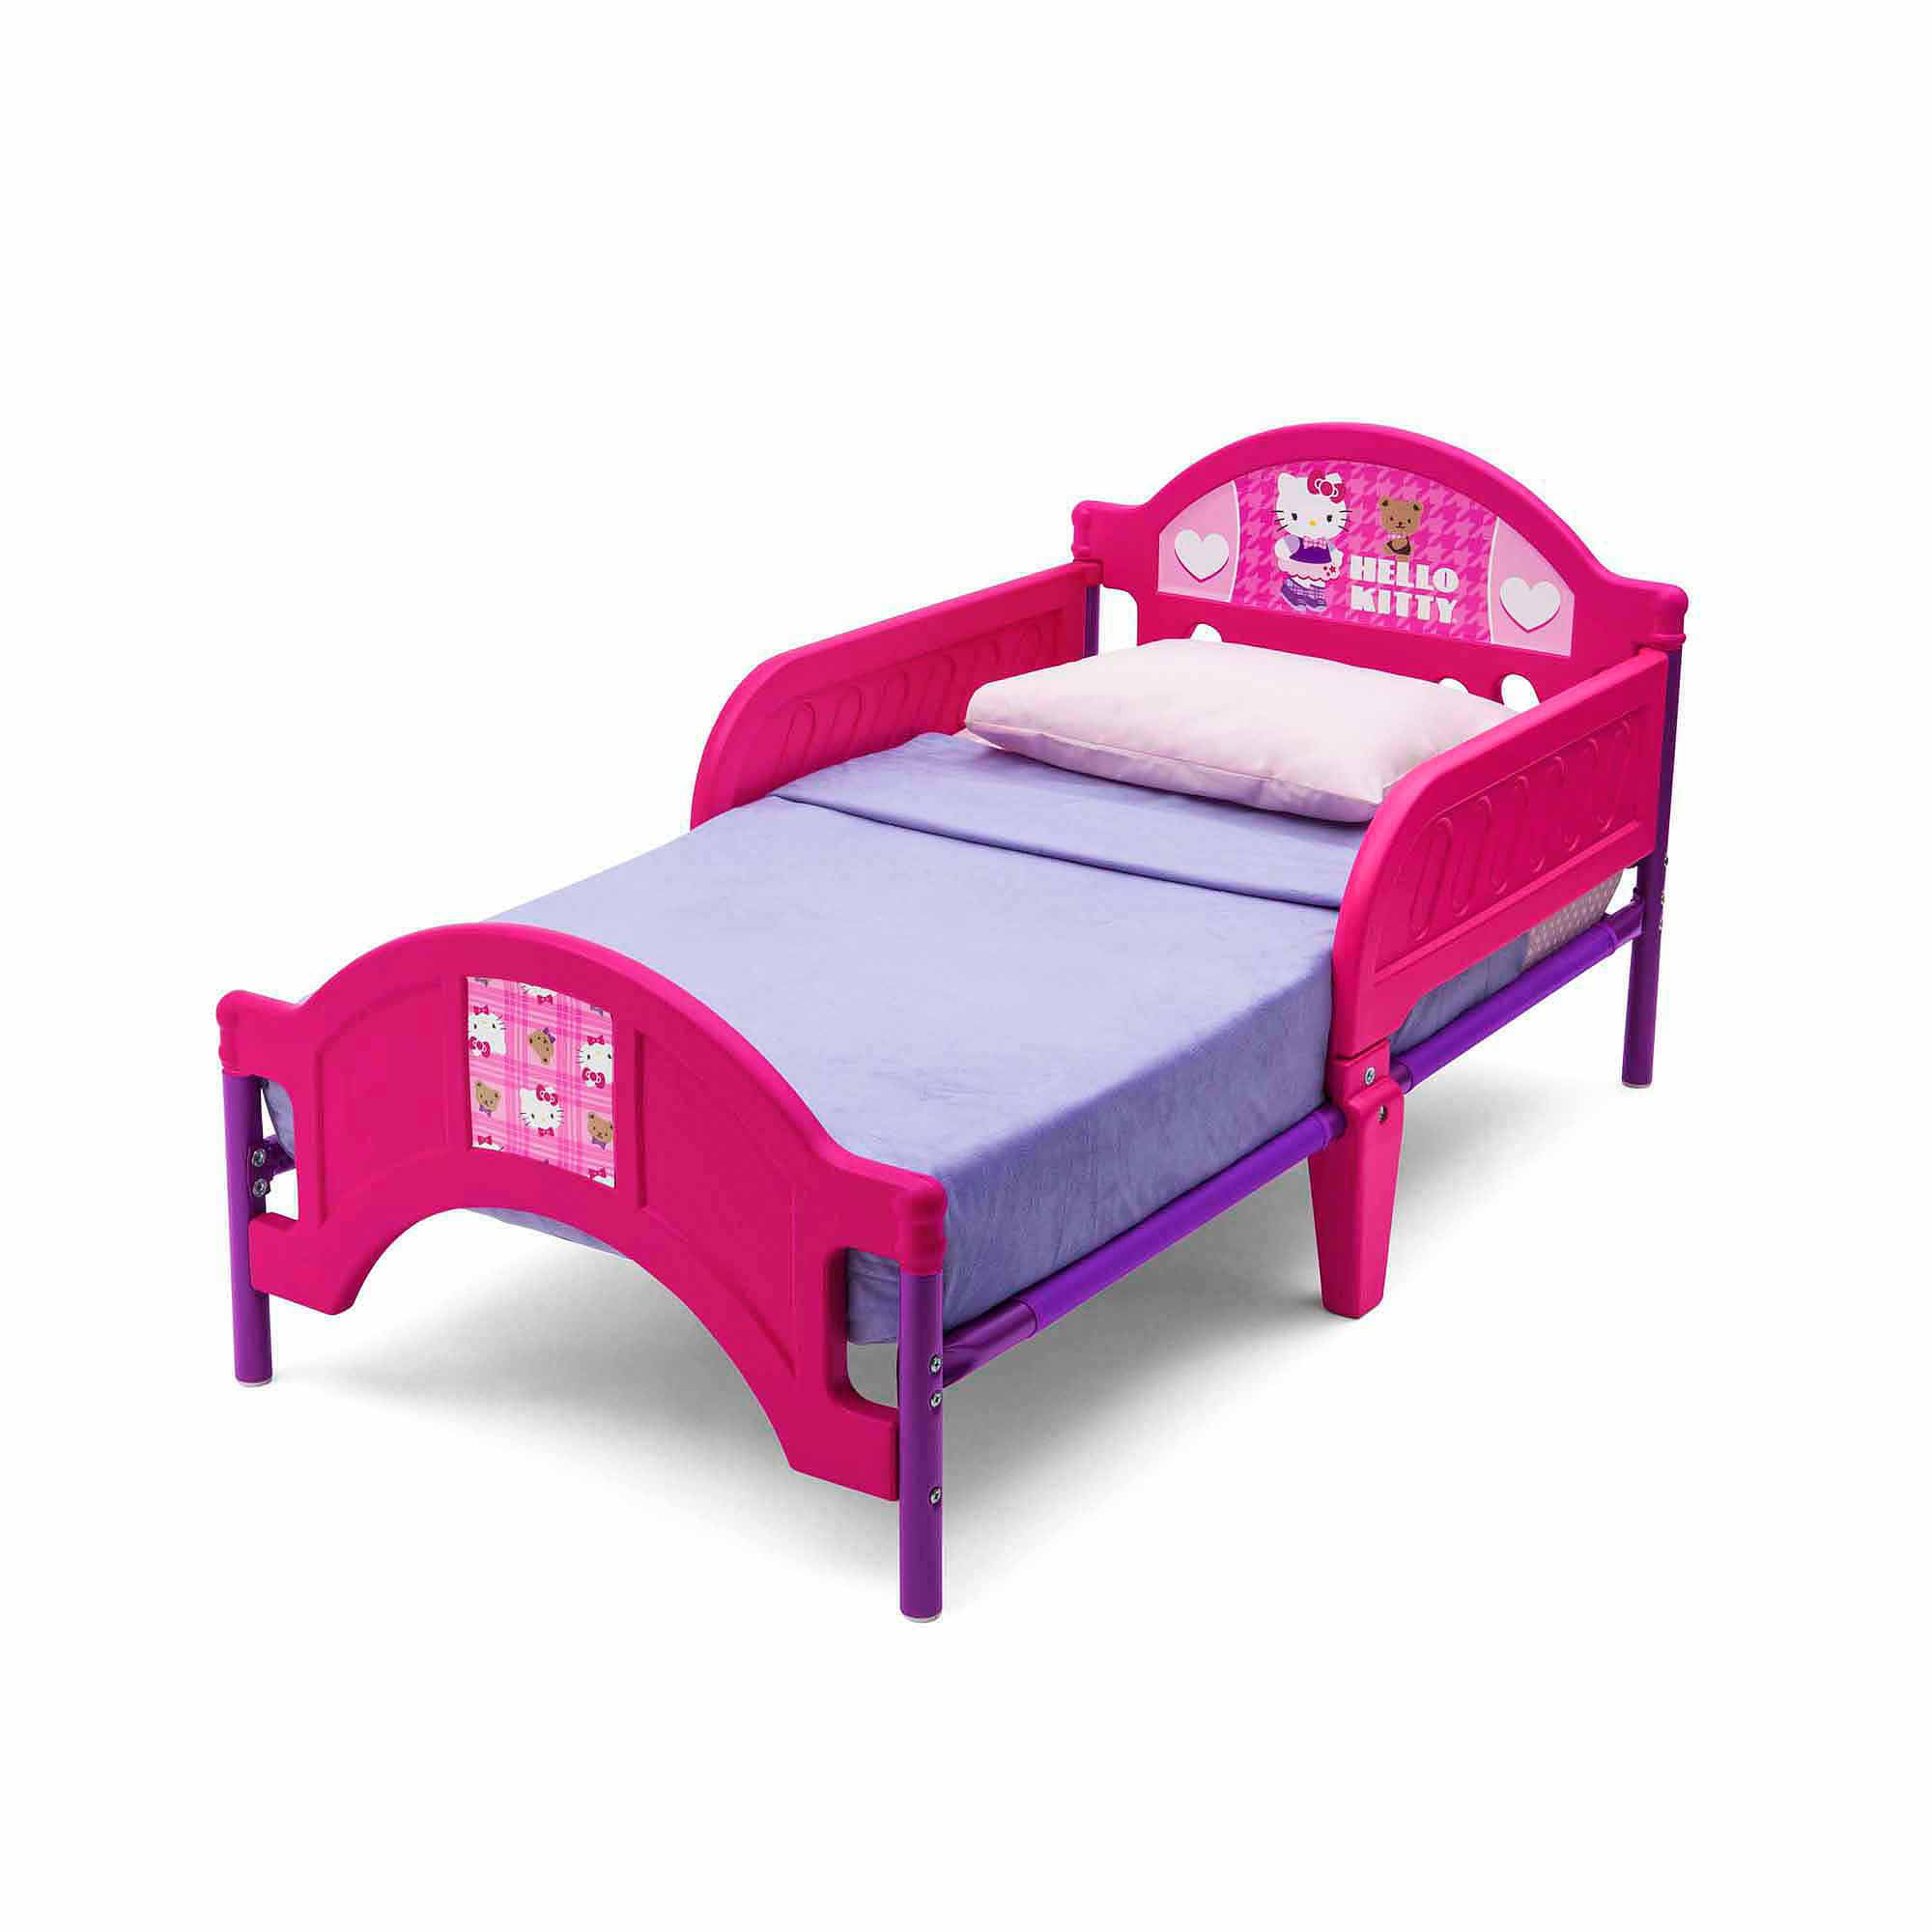 Hello Kitty Plastic Toddler Bed   Walmart.com Part 60